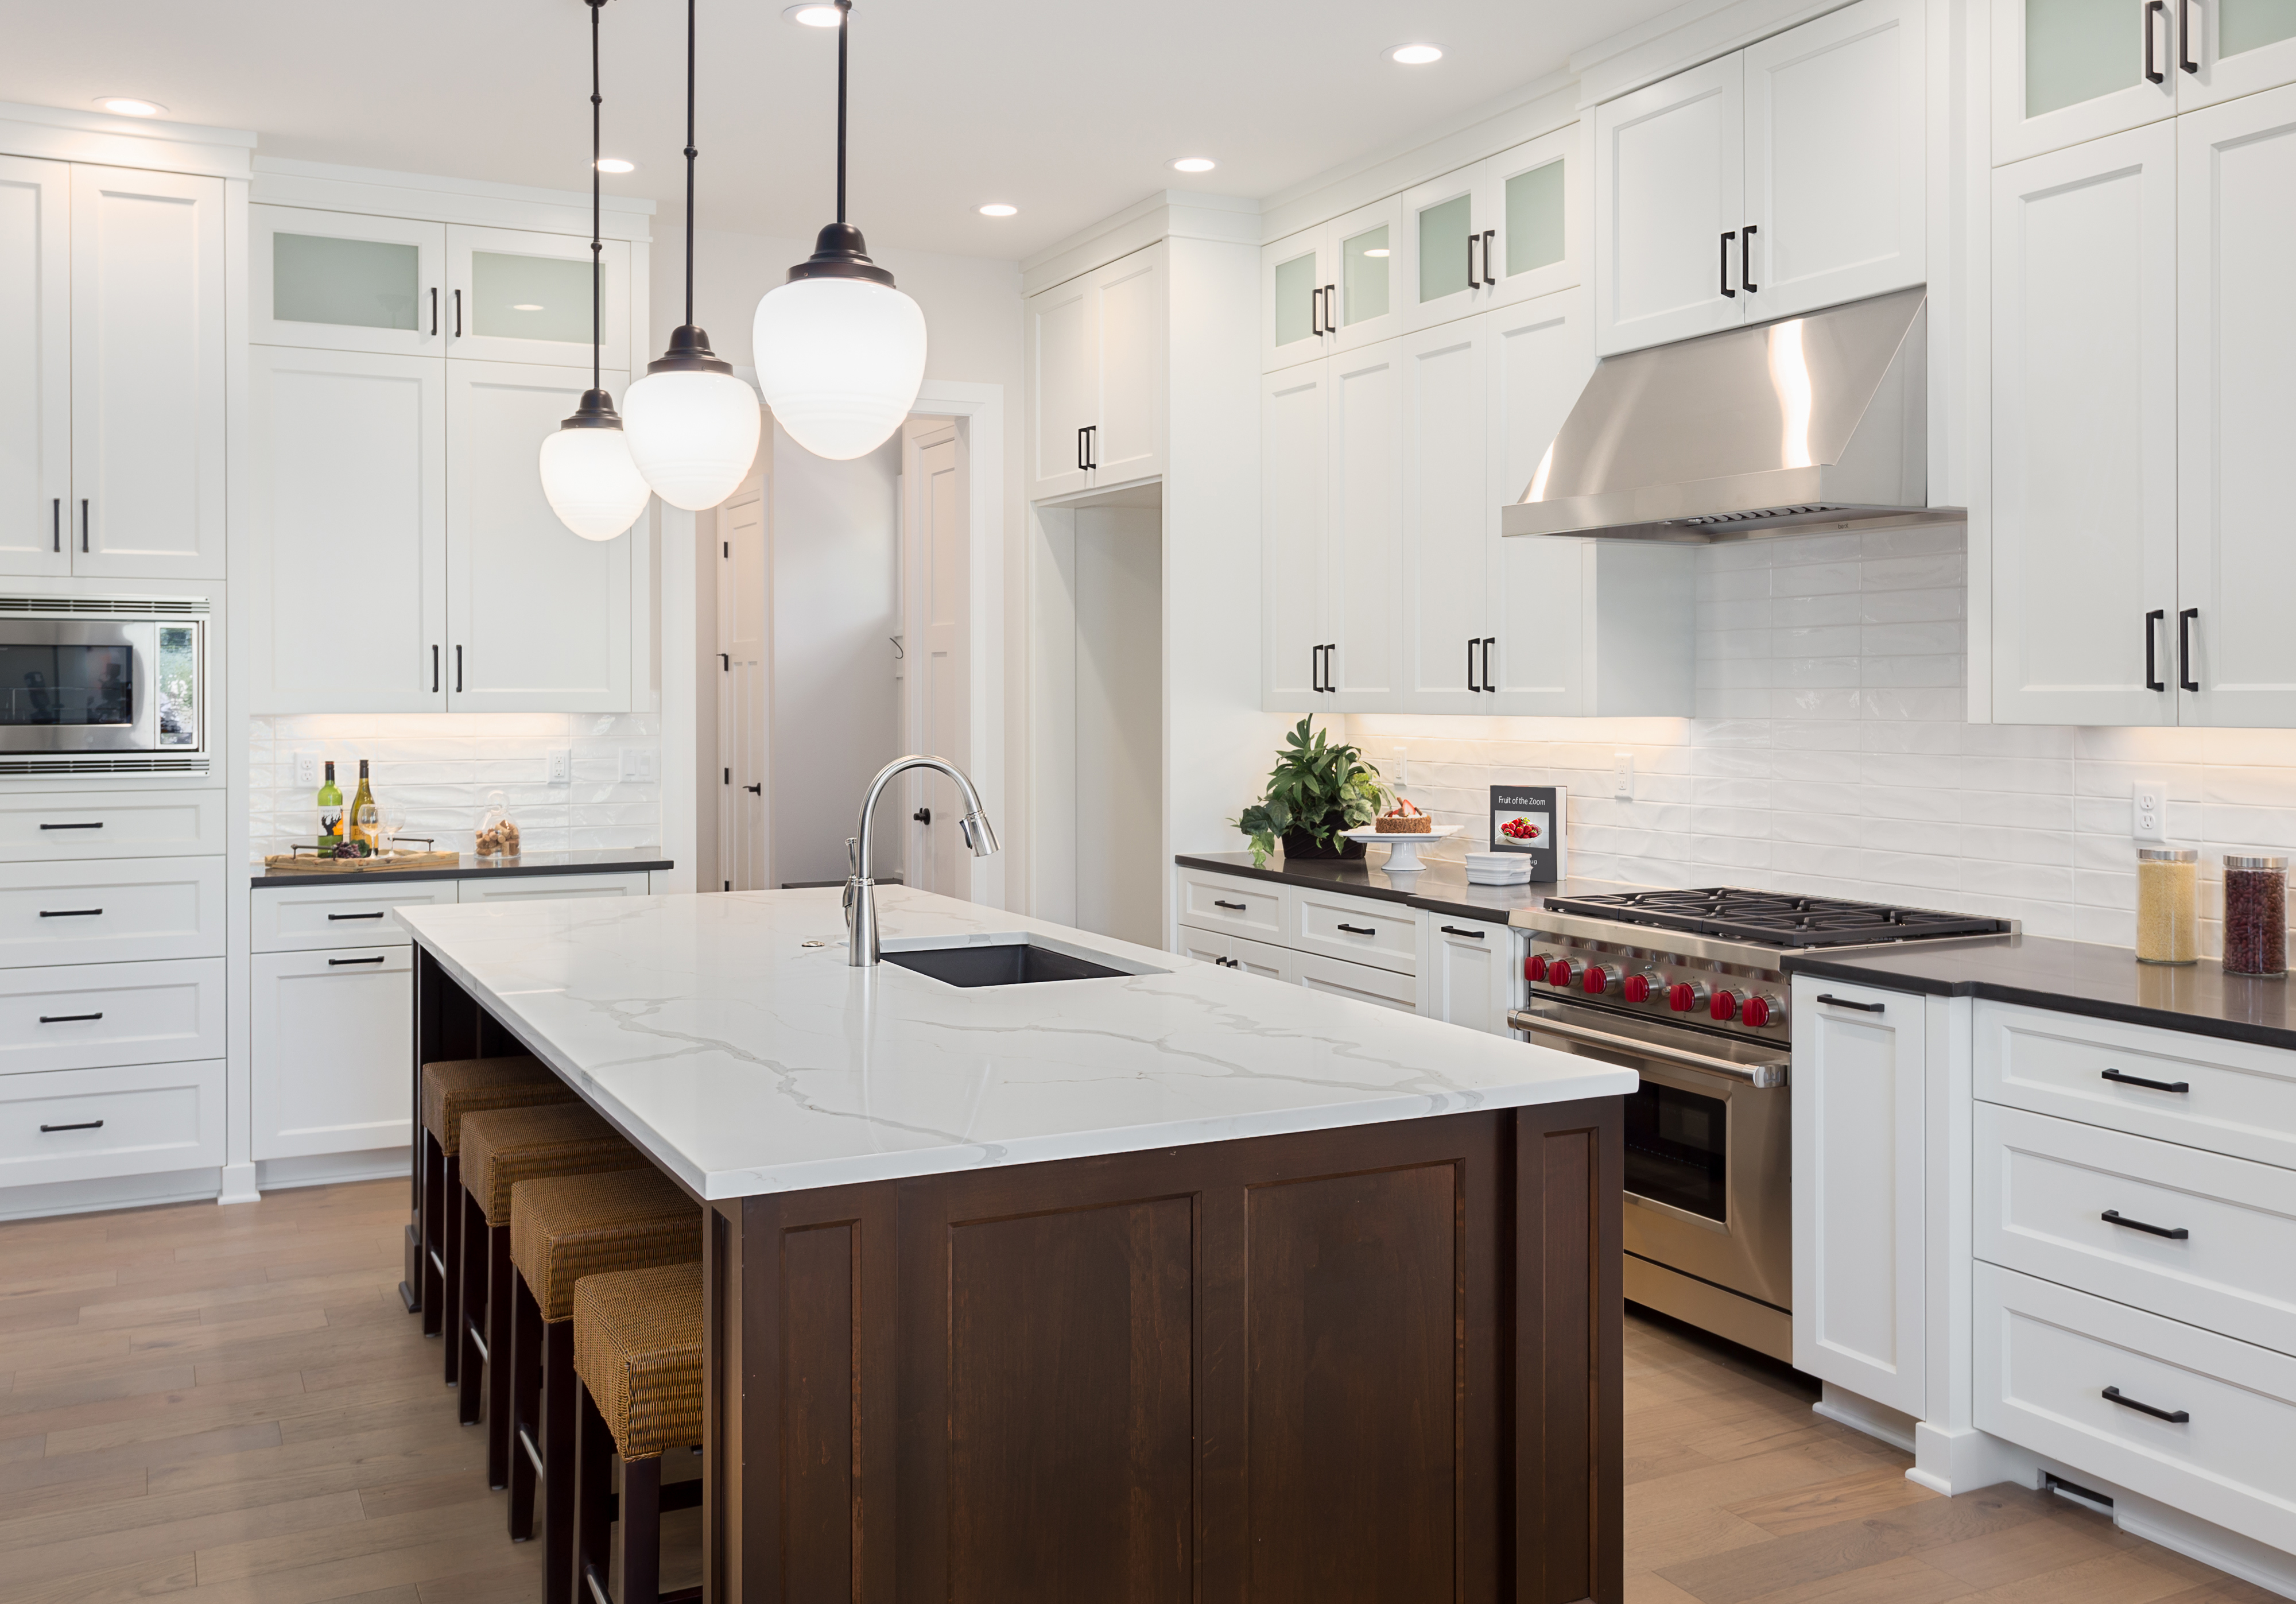 Select Floors Sandy Springs Kitchen Cabinet Refacing Call 770-218-3462